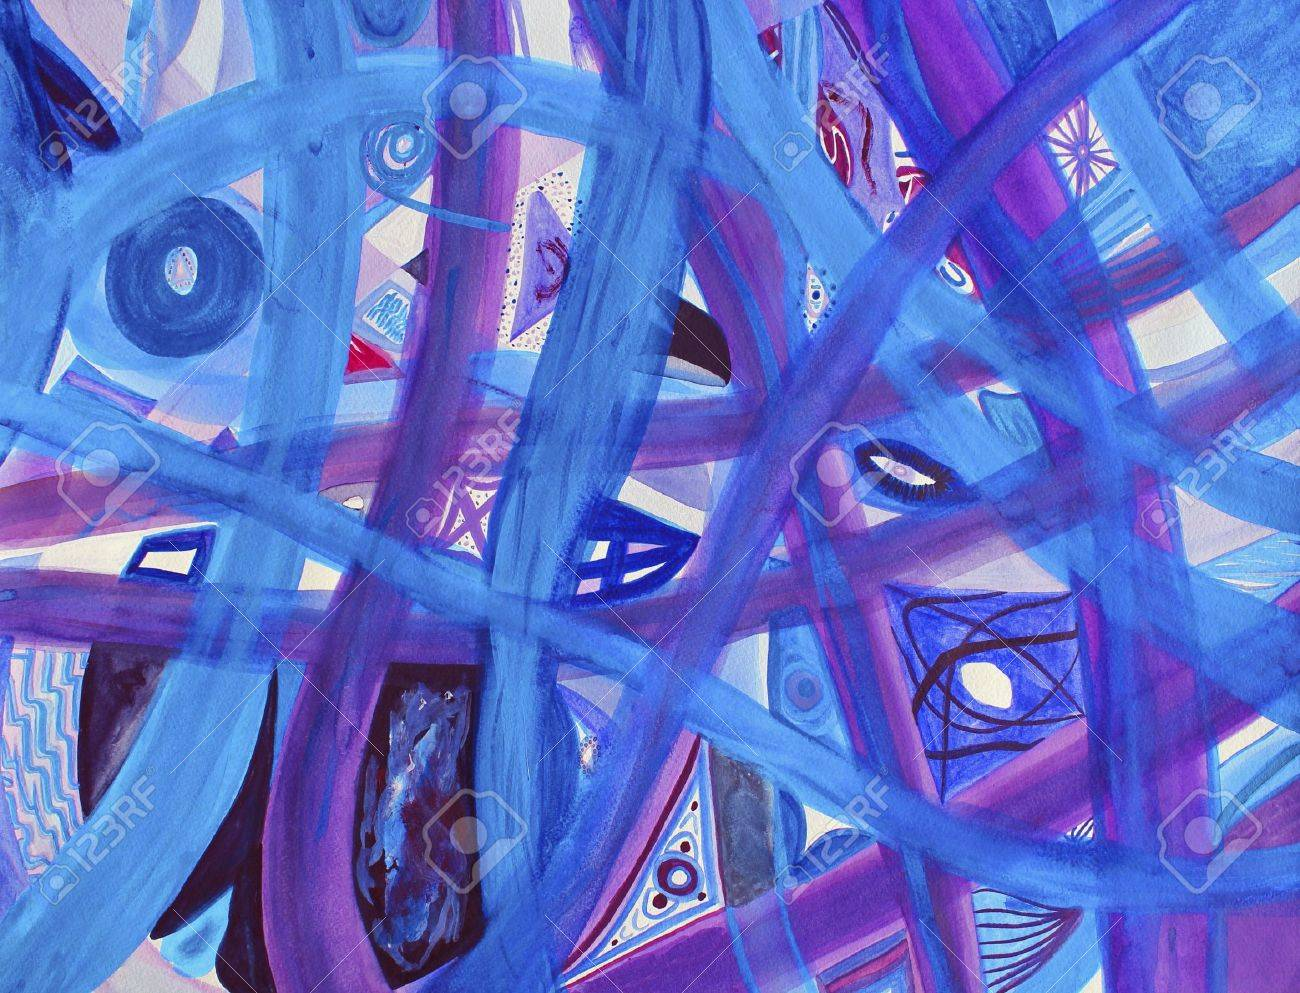 Abstract blue, purple, red roads on white background. Many paths of blue and purple intertwine along with small areas of red on a background of white. Original watercolor art painting. Stock Photo - 7322010